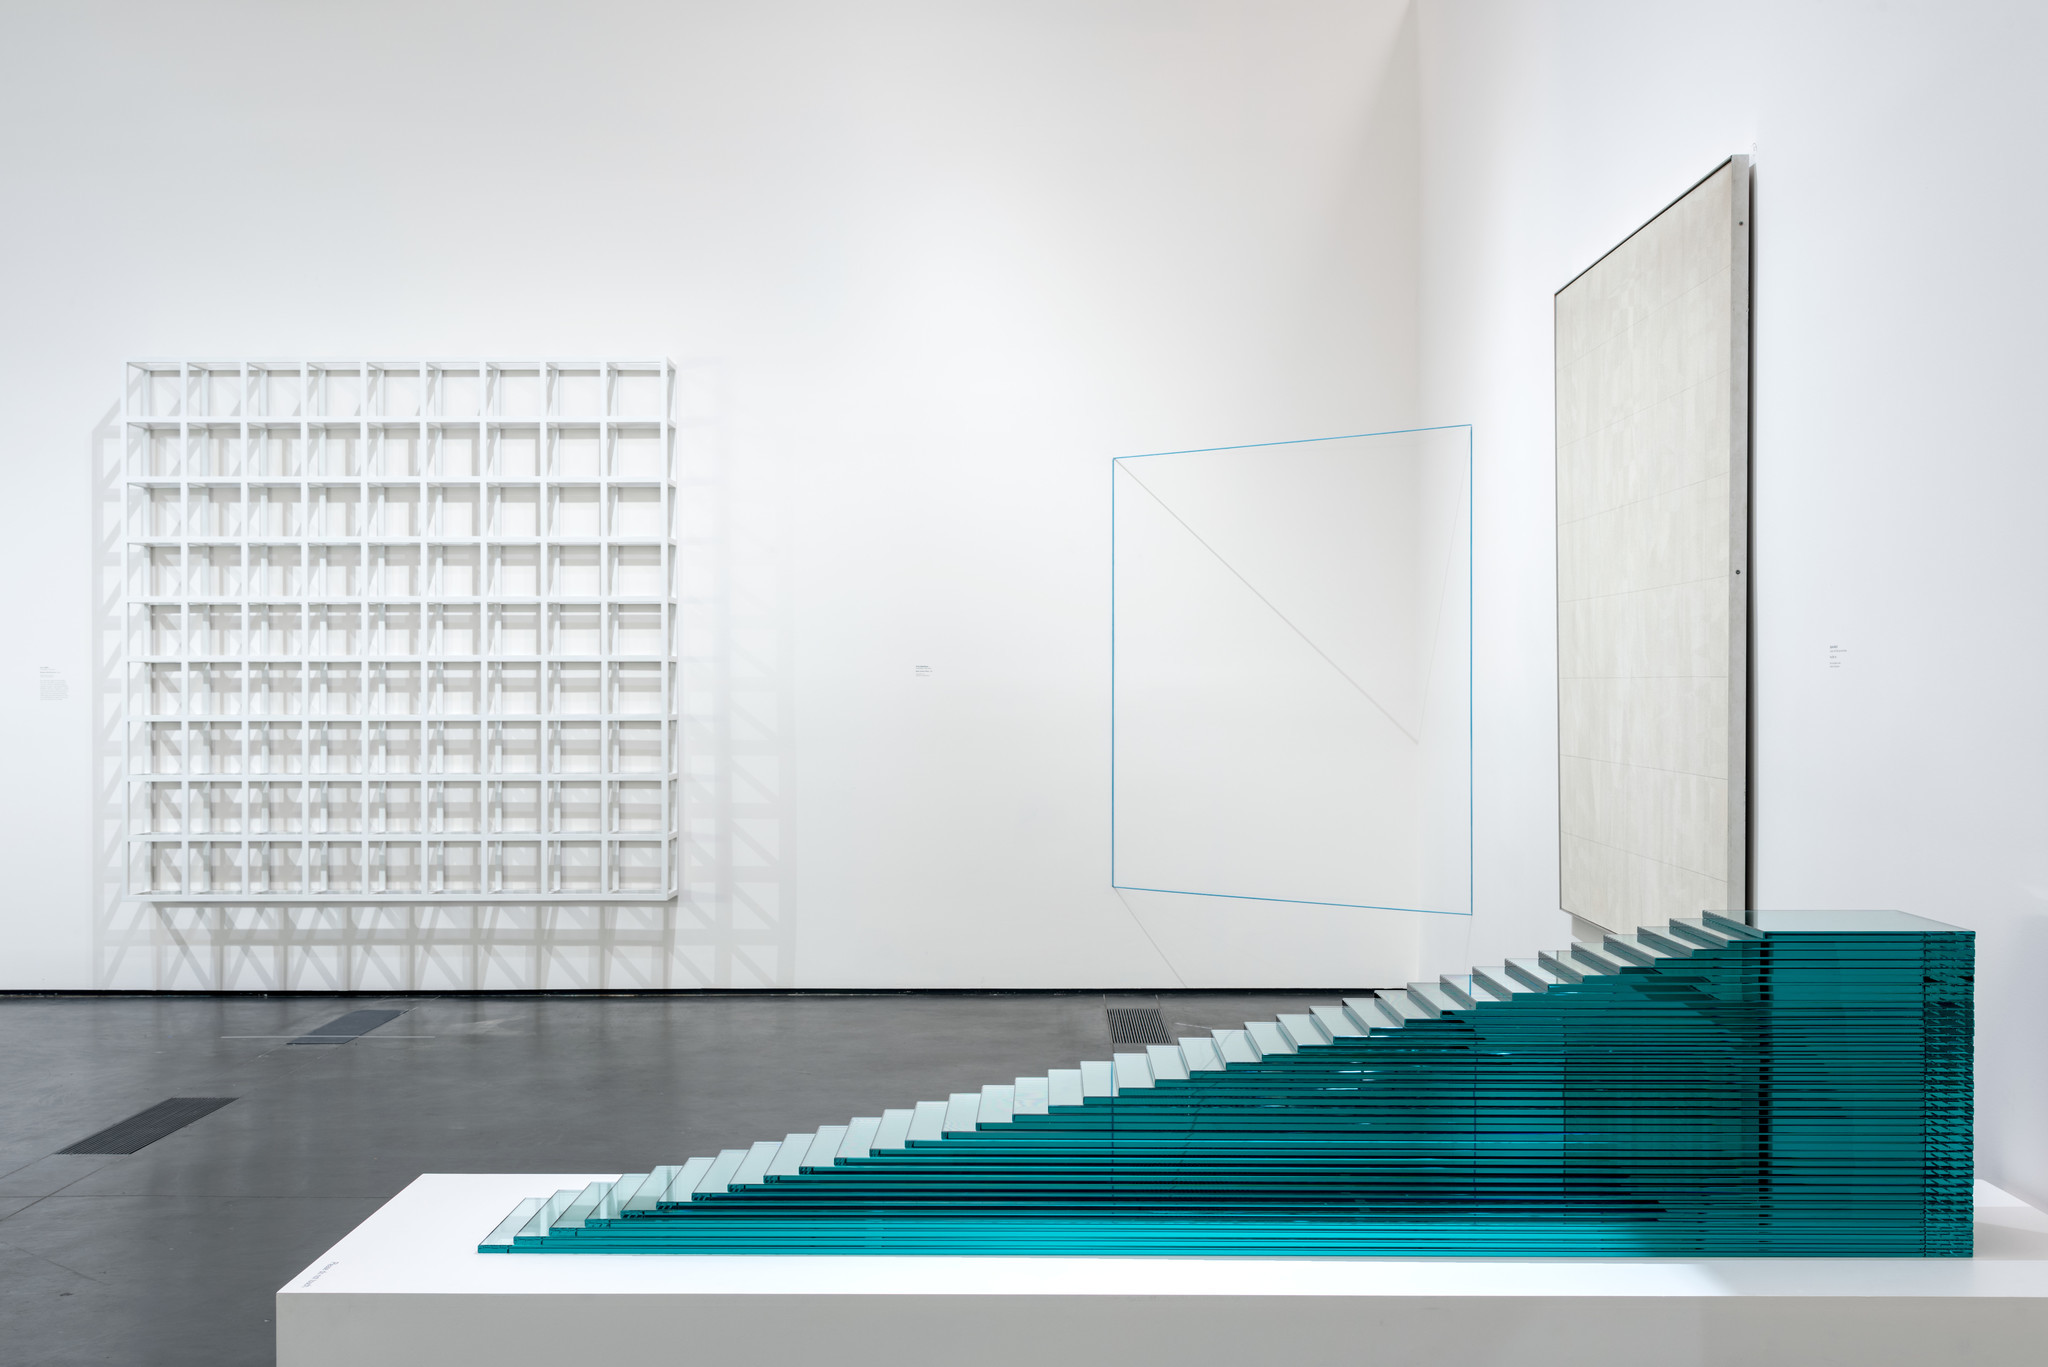 Minimalist works by Sol Lewitt, Fred Sandback, Agnes Martin and Robert Smithson are in the Dwan show.